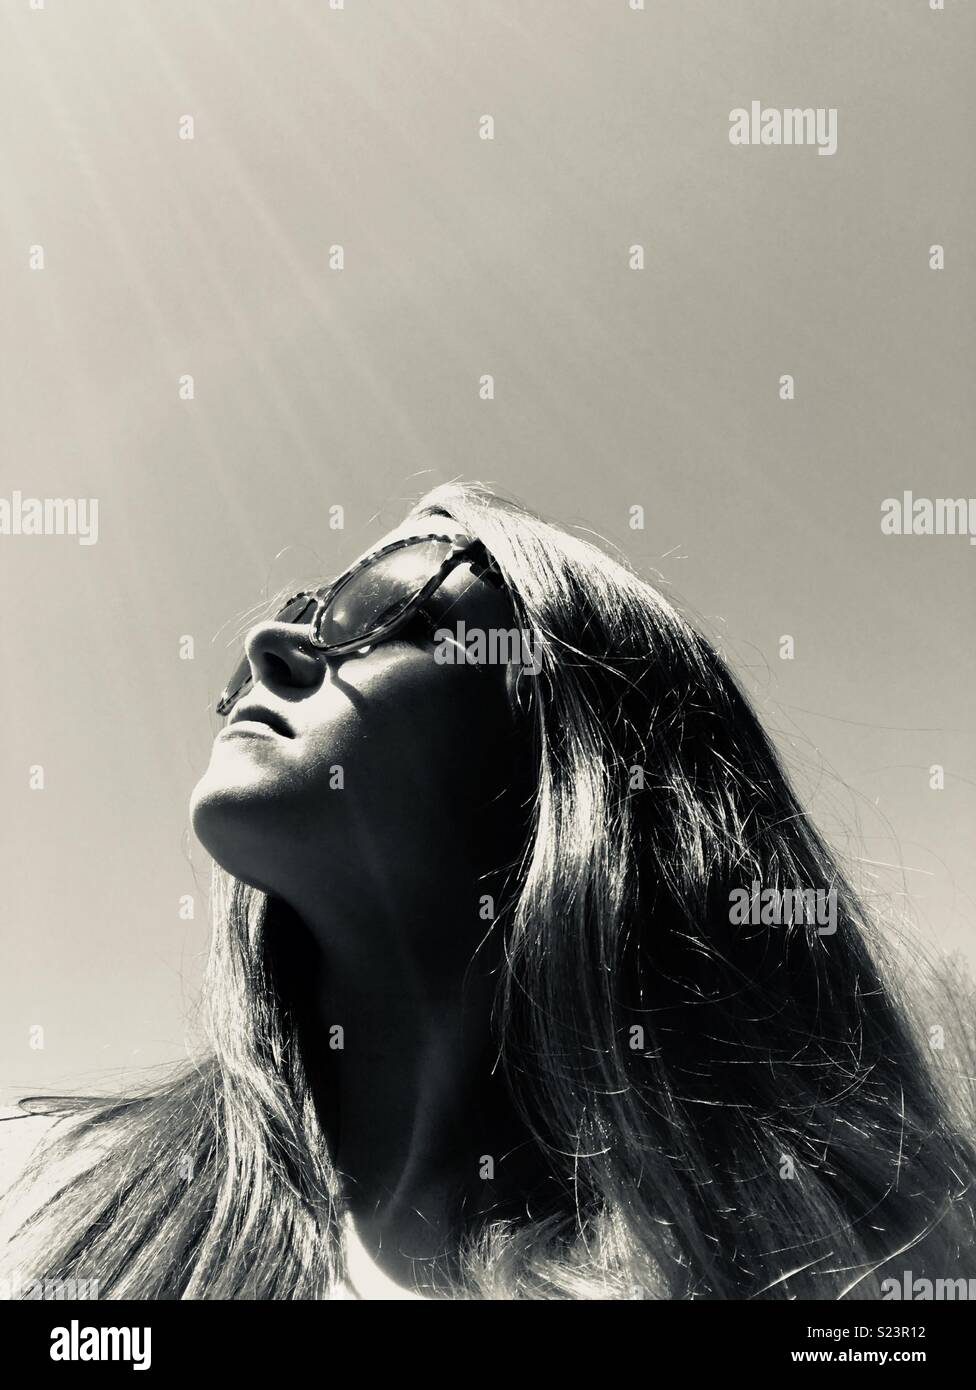 Soleil bas sur girl with sunglasses Photo Stock